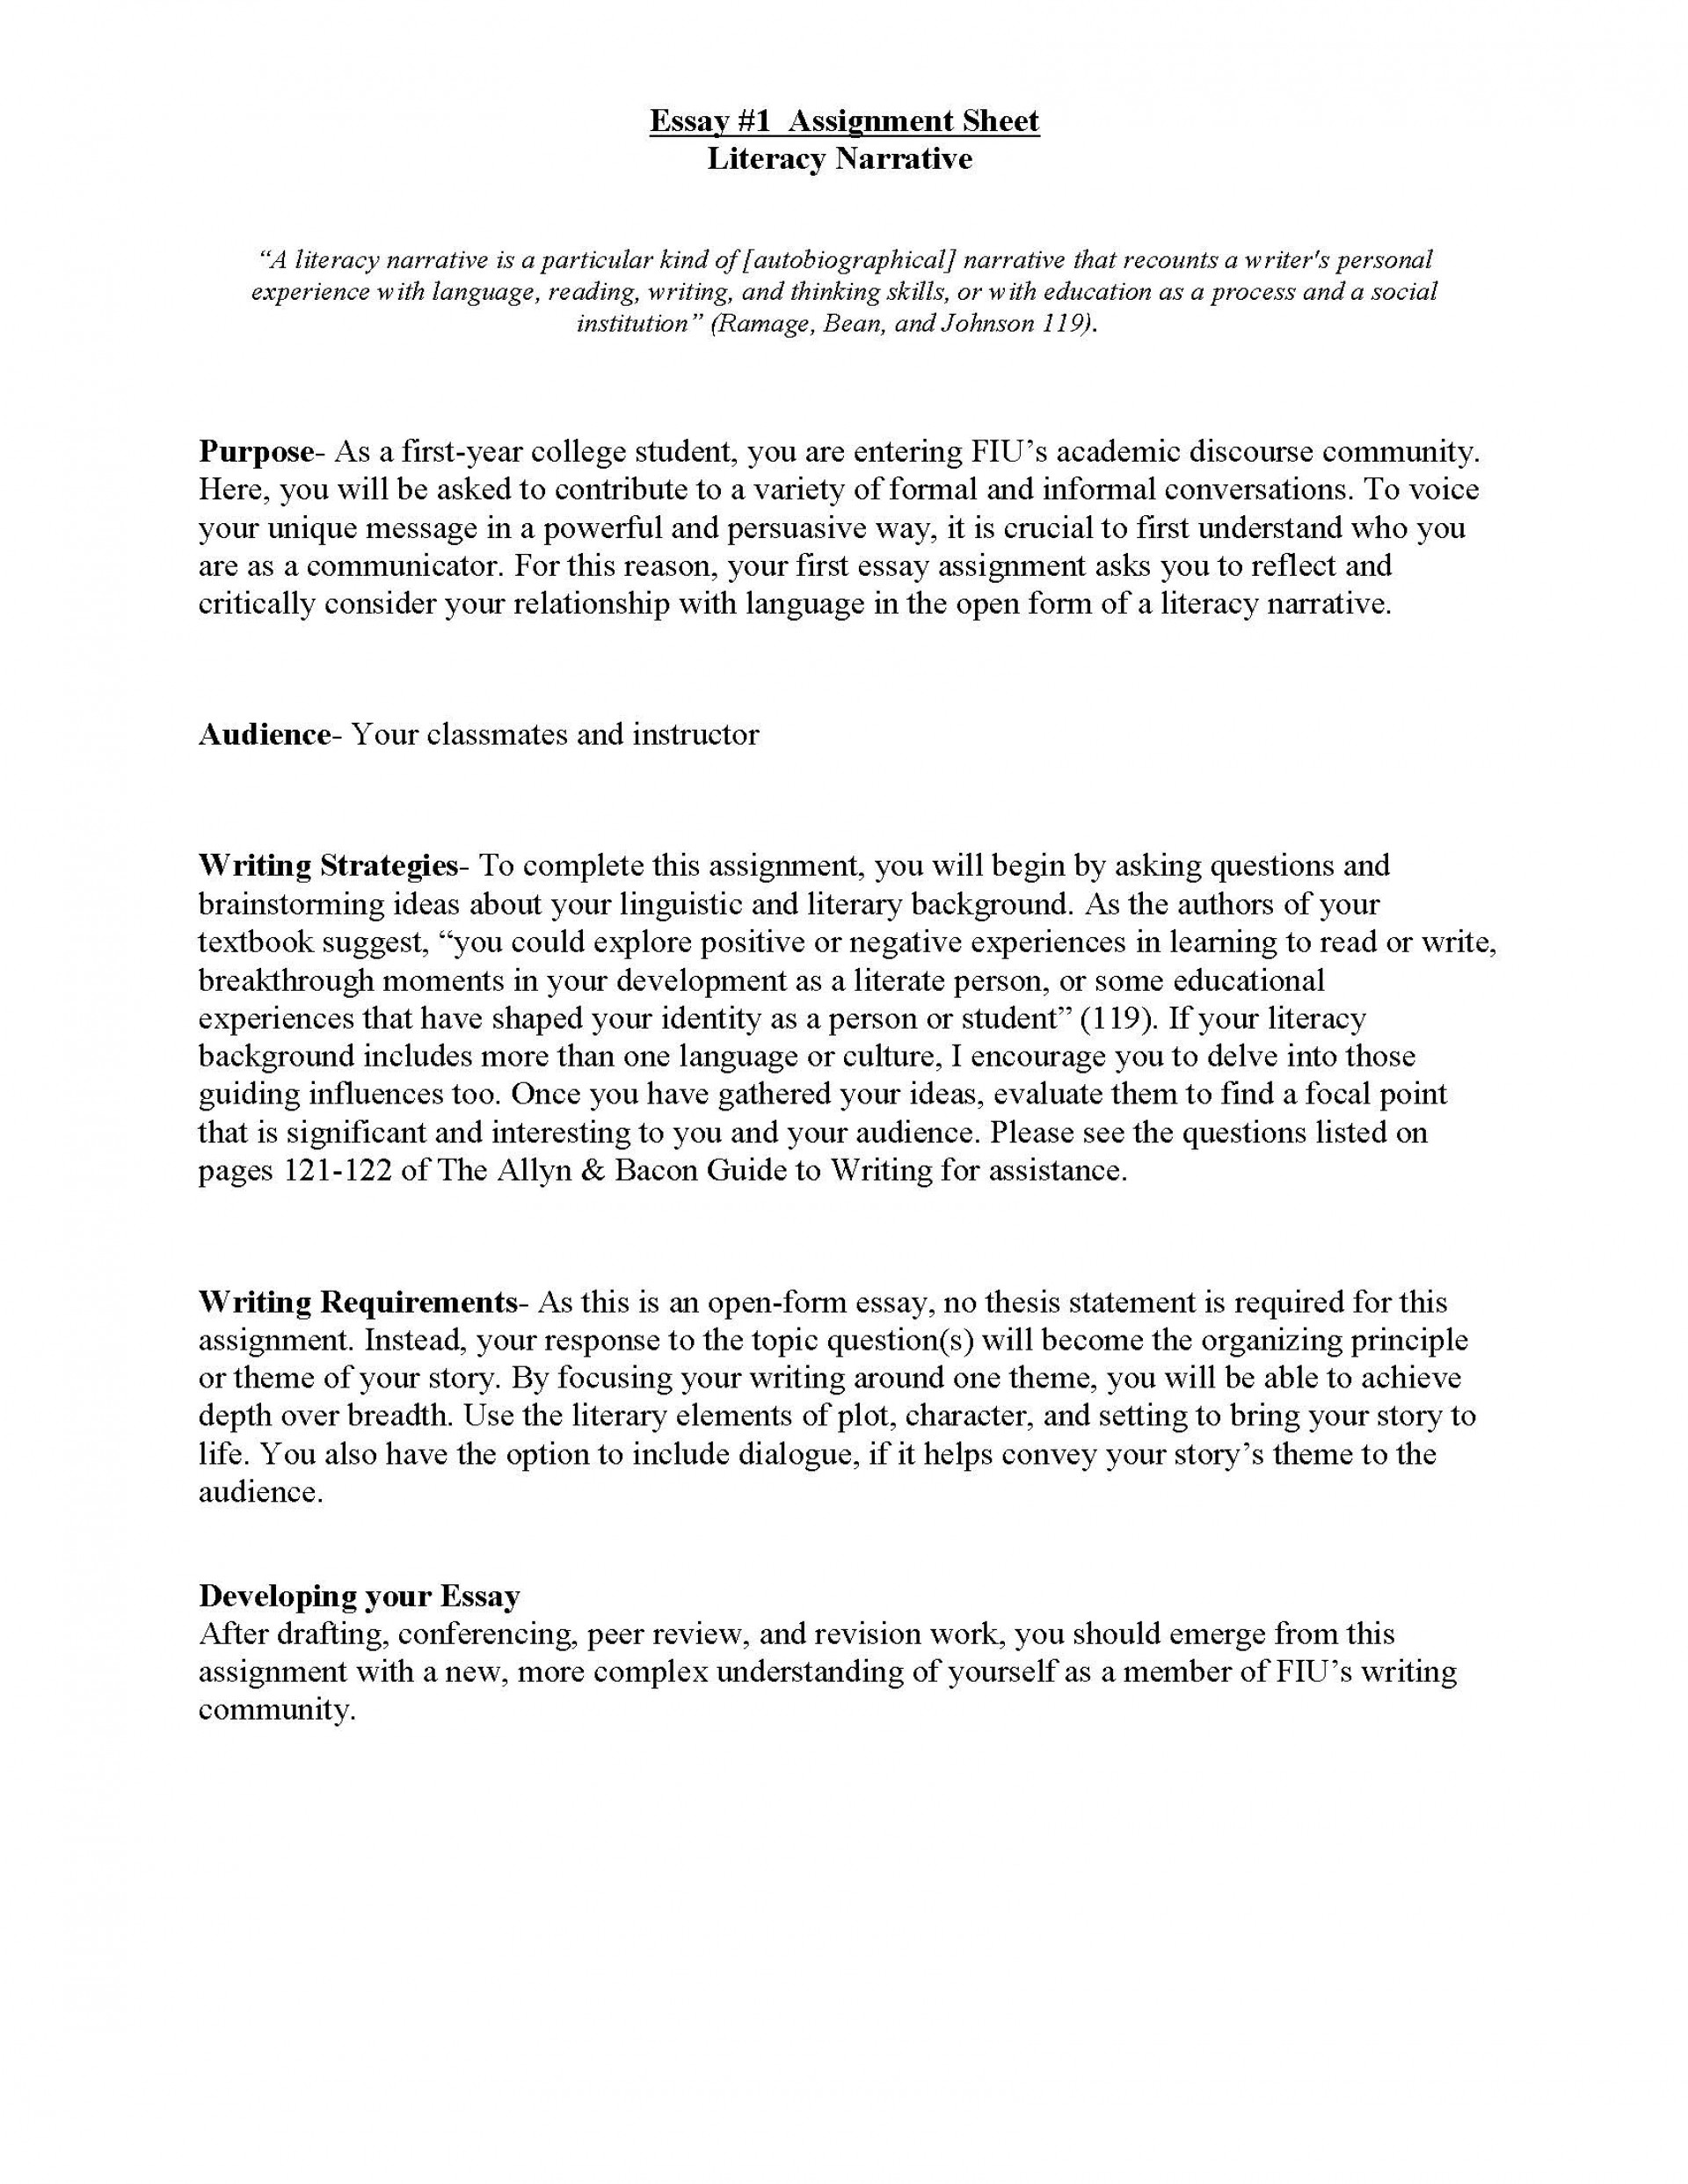 017 Literacy Narrative Unit Assignment Spring 2012 Page 1s Of Essays Essay Rare Examples Writing College For Students High School 1920